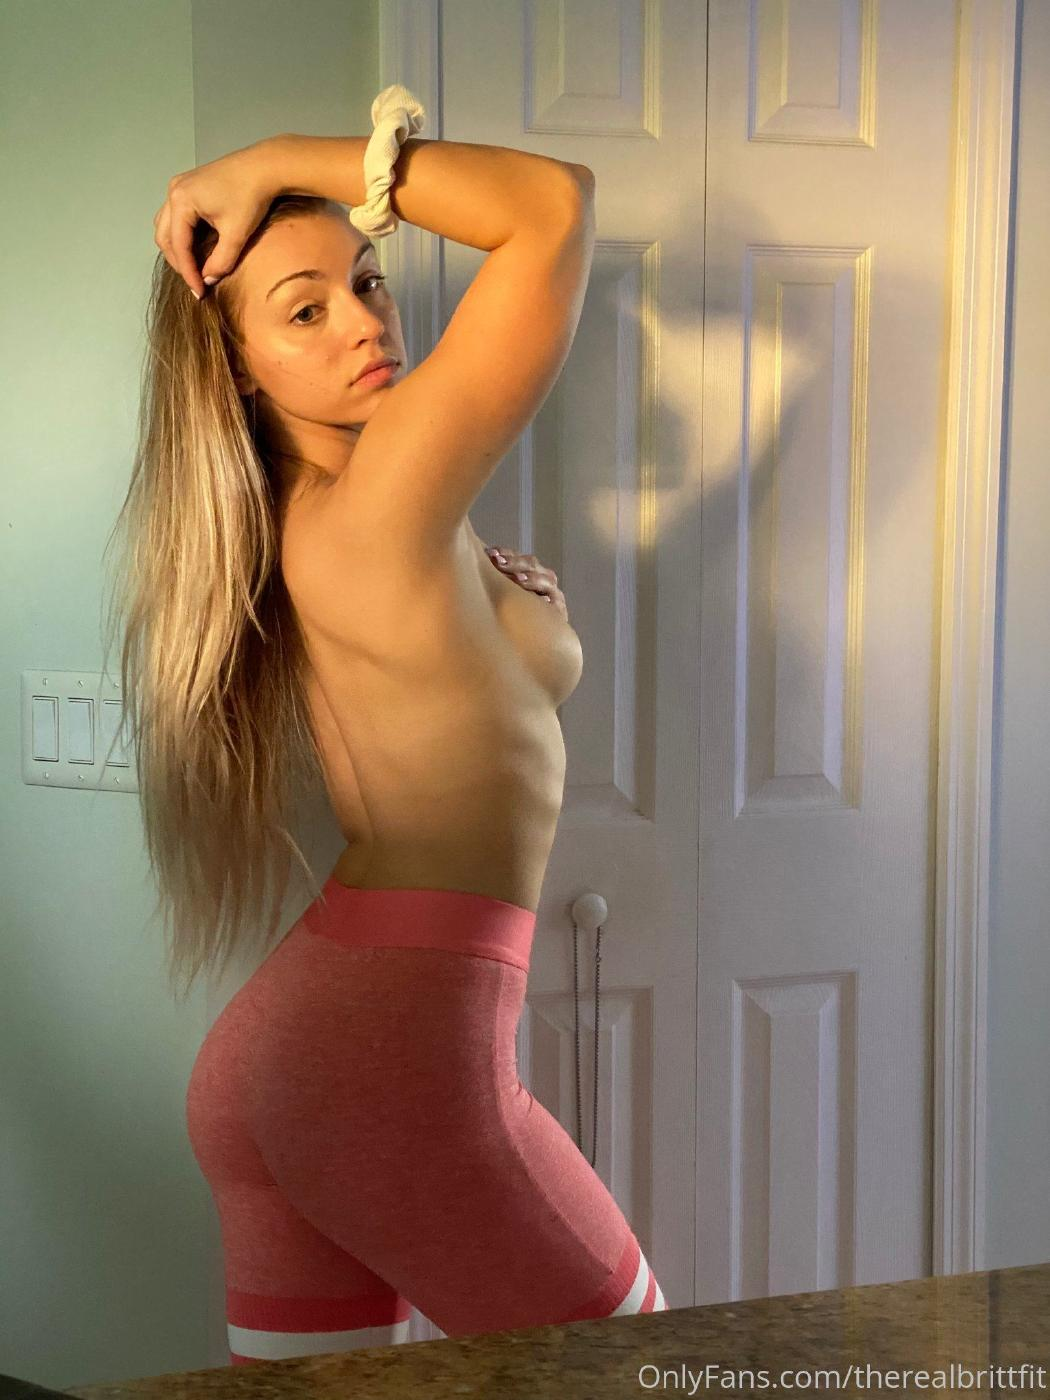 Therealbrittfit Nude Onlyfans Picture Set Leaked 0003